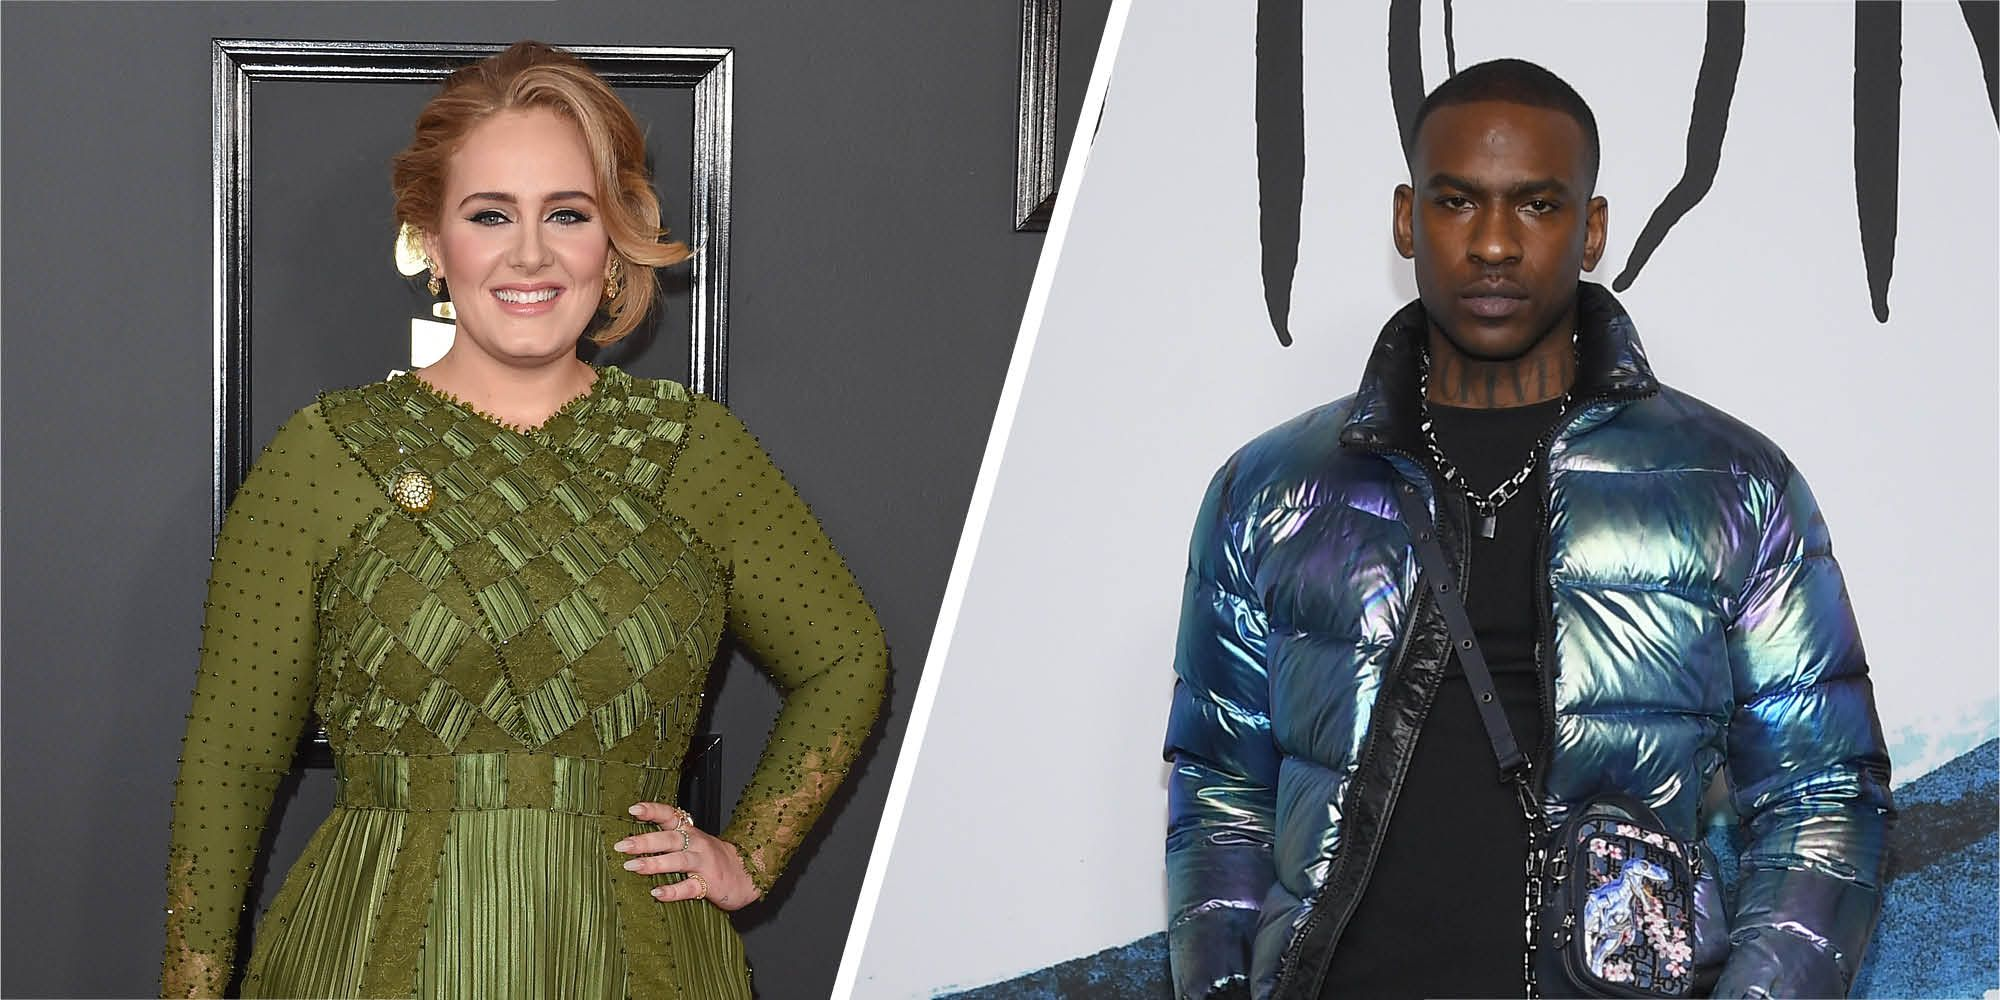 Adele And Skepta Are Dating According To Reports